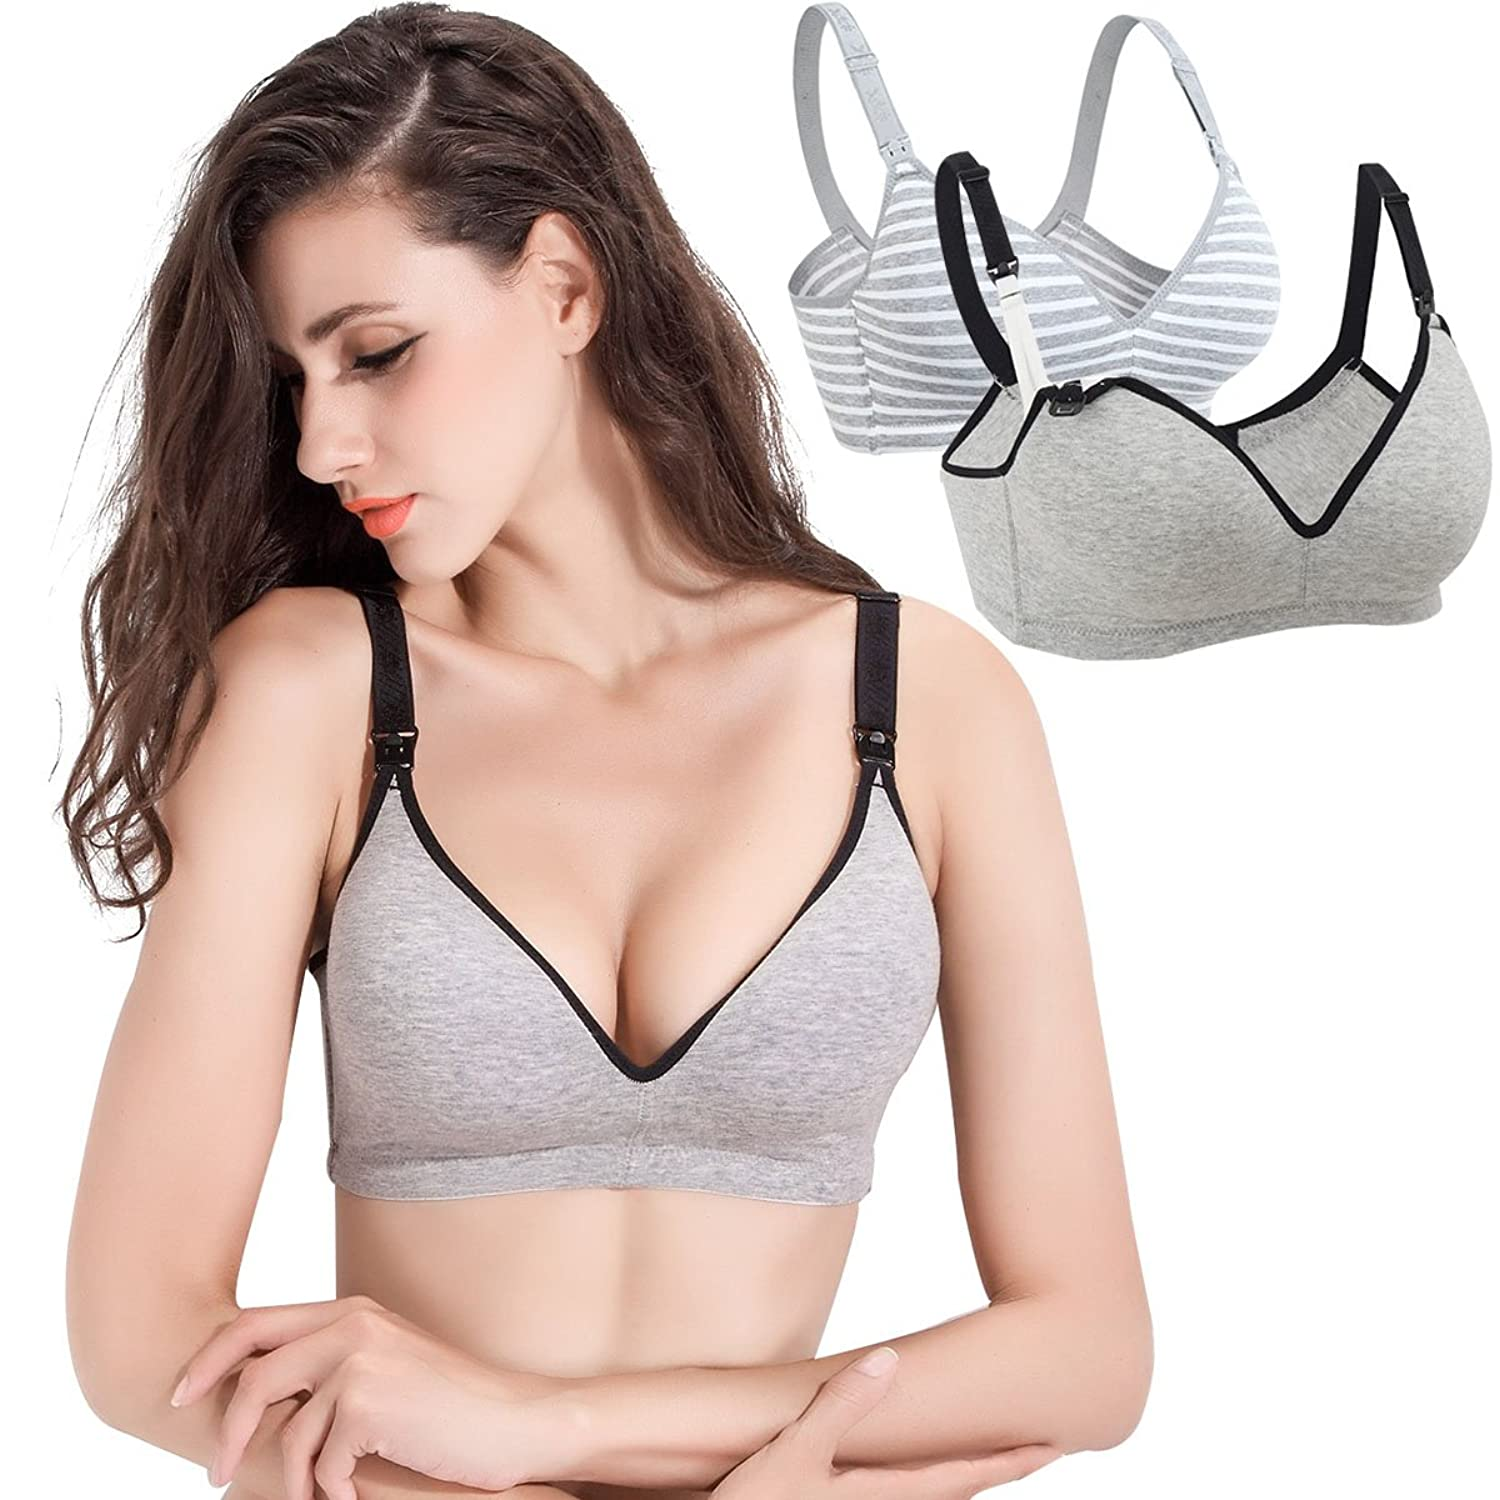 cb74c0293 COMFORT AND SOFT  Enjoy unmatched comfort and soft with this maternity  nursing bra. A wireless design makes the nursing bra very soft.